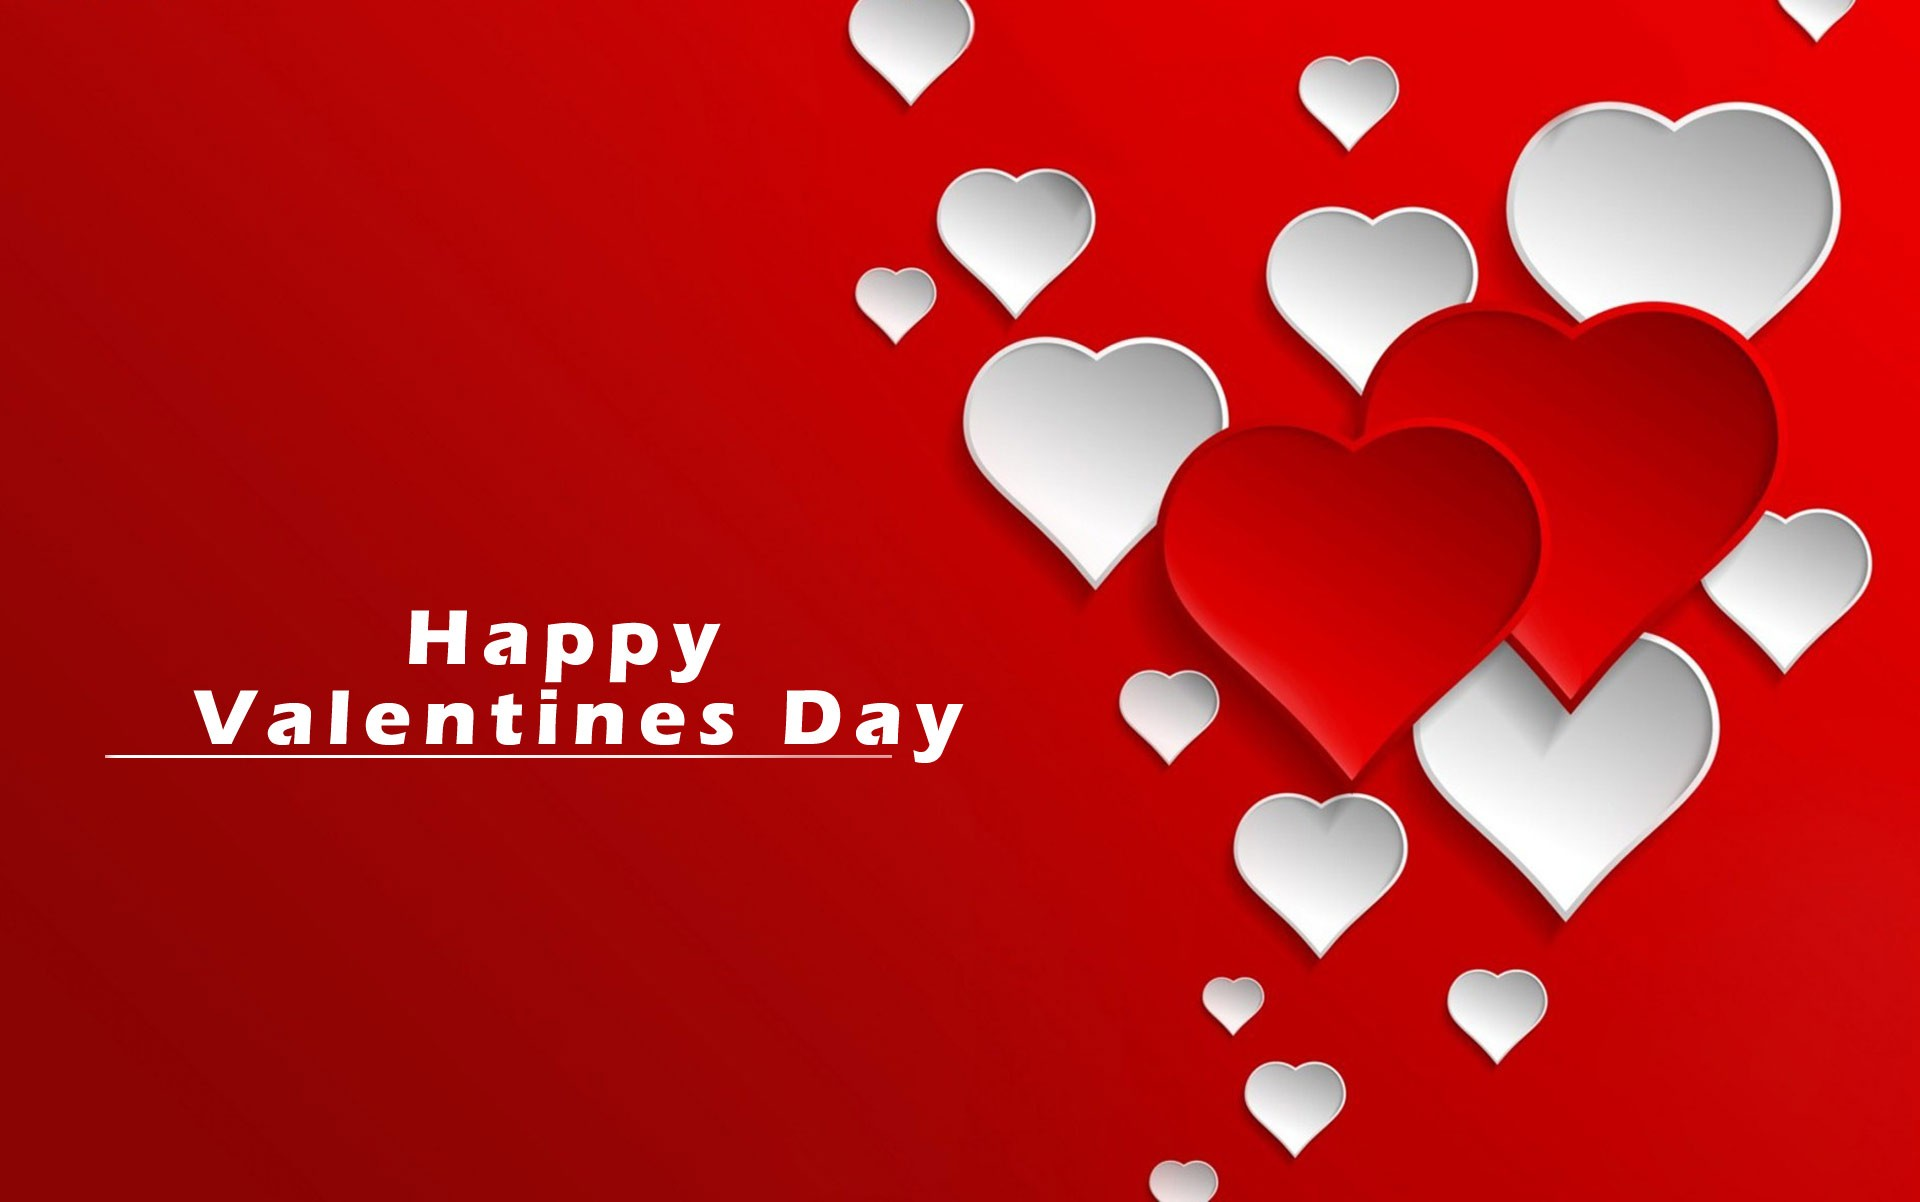 1920x1202 Happy Valentines Day Images, Pics, Photos & Wallpapers